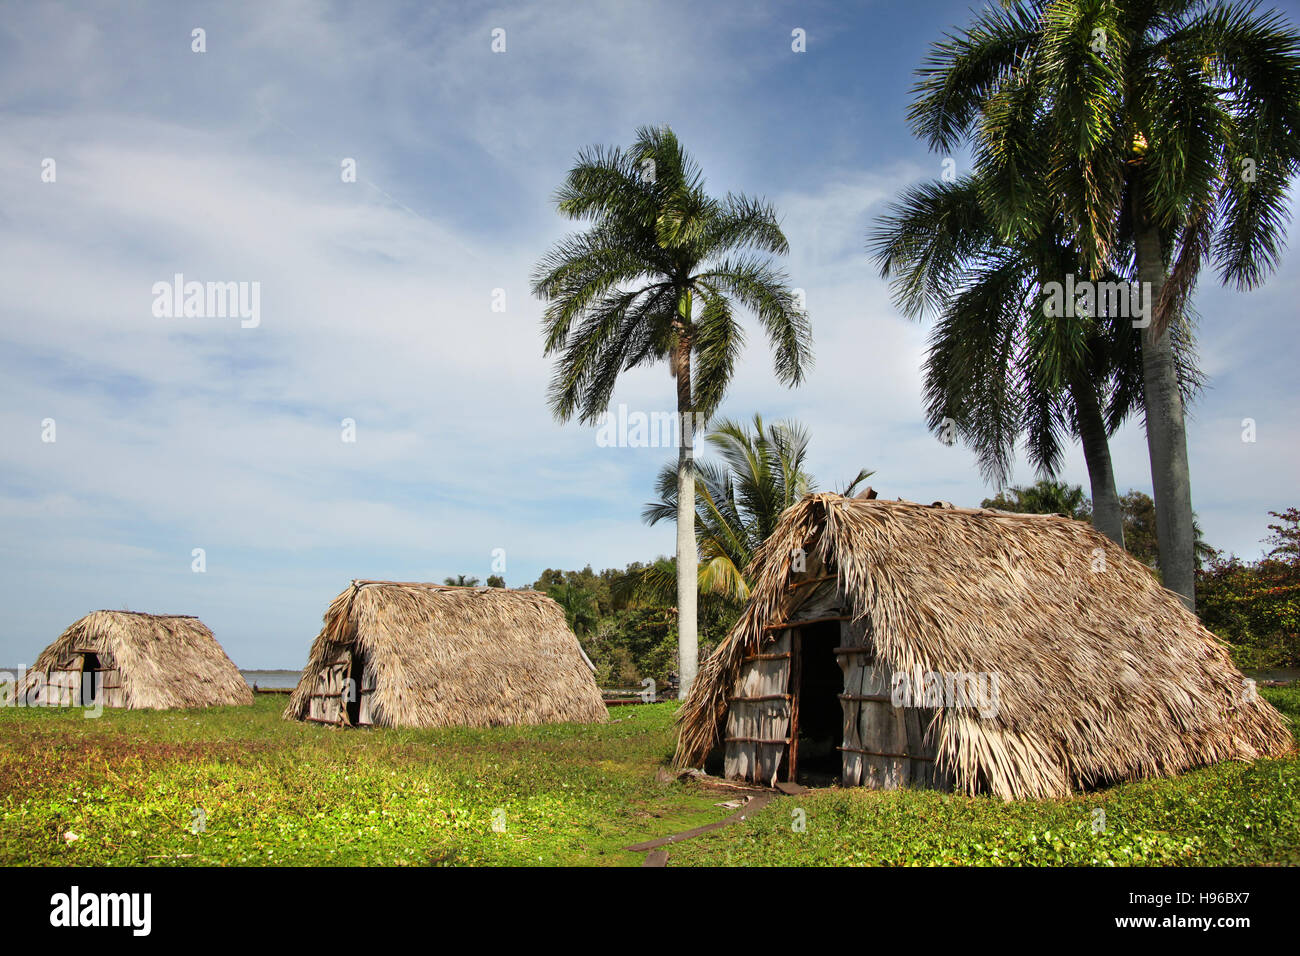 Beautiful landscape of small islands with traditional straw hut homes and palm trees guama cuba caribbean